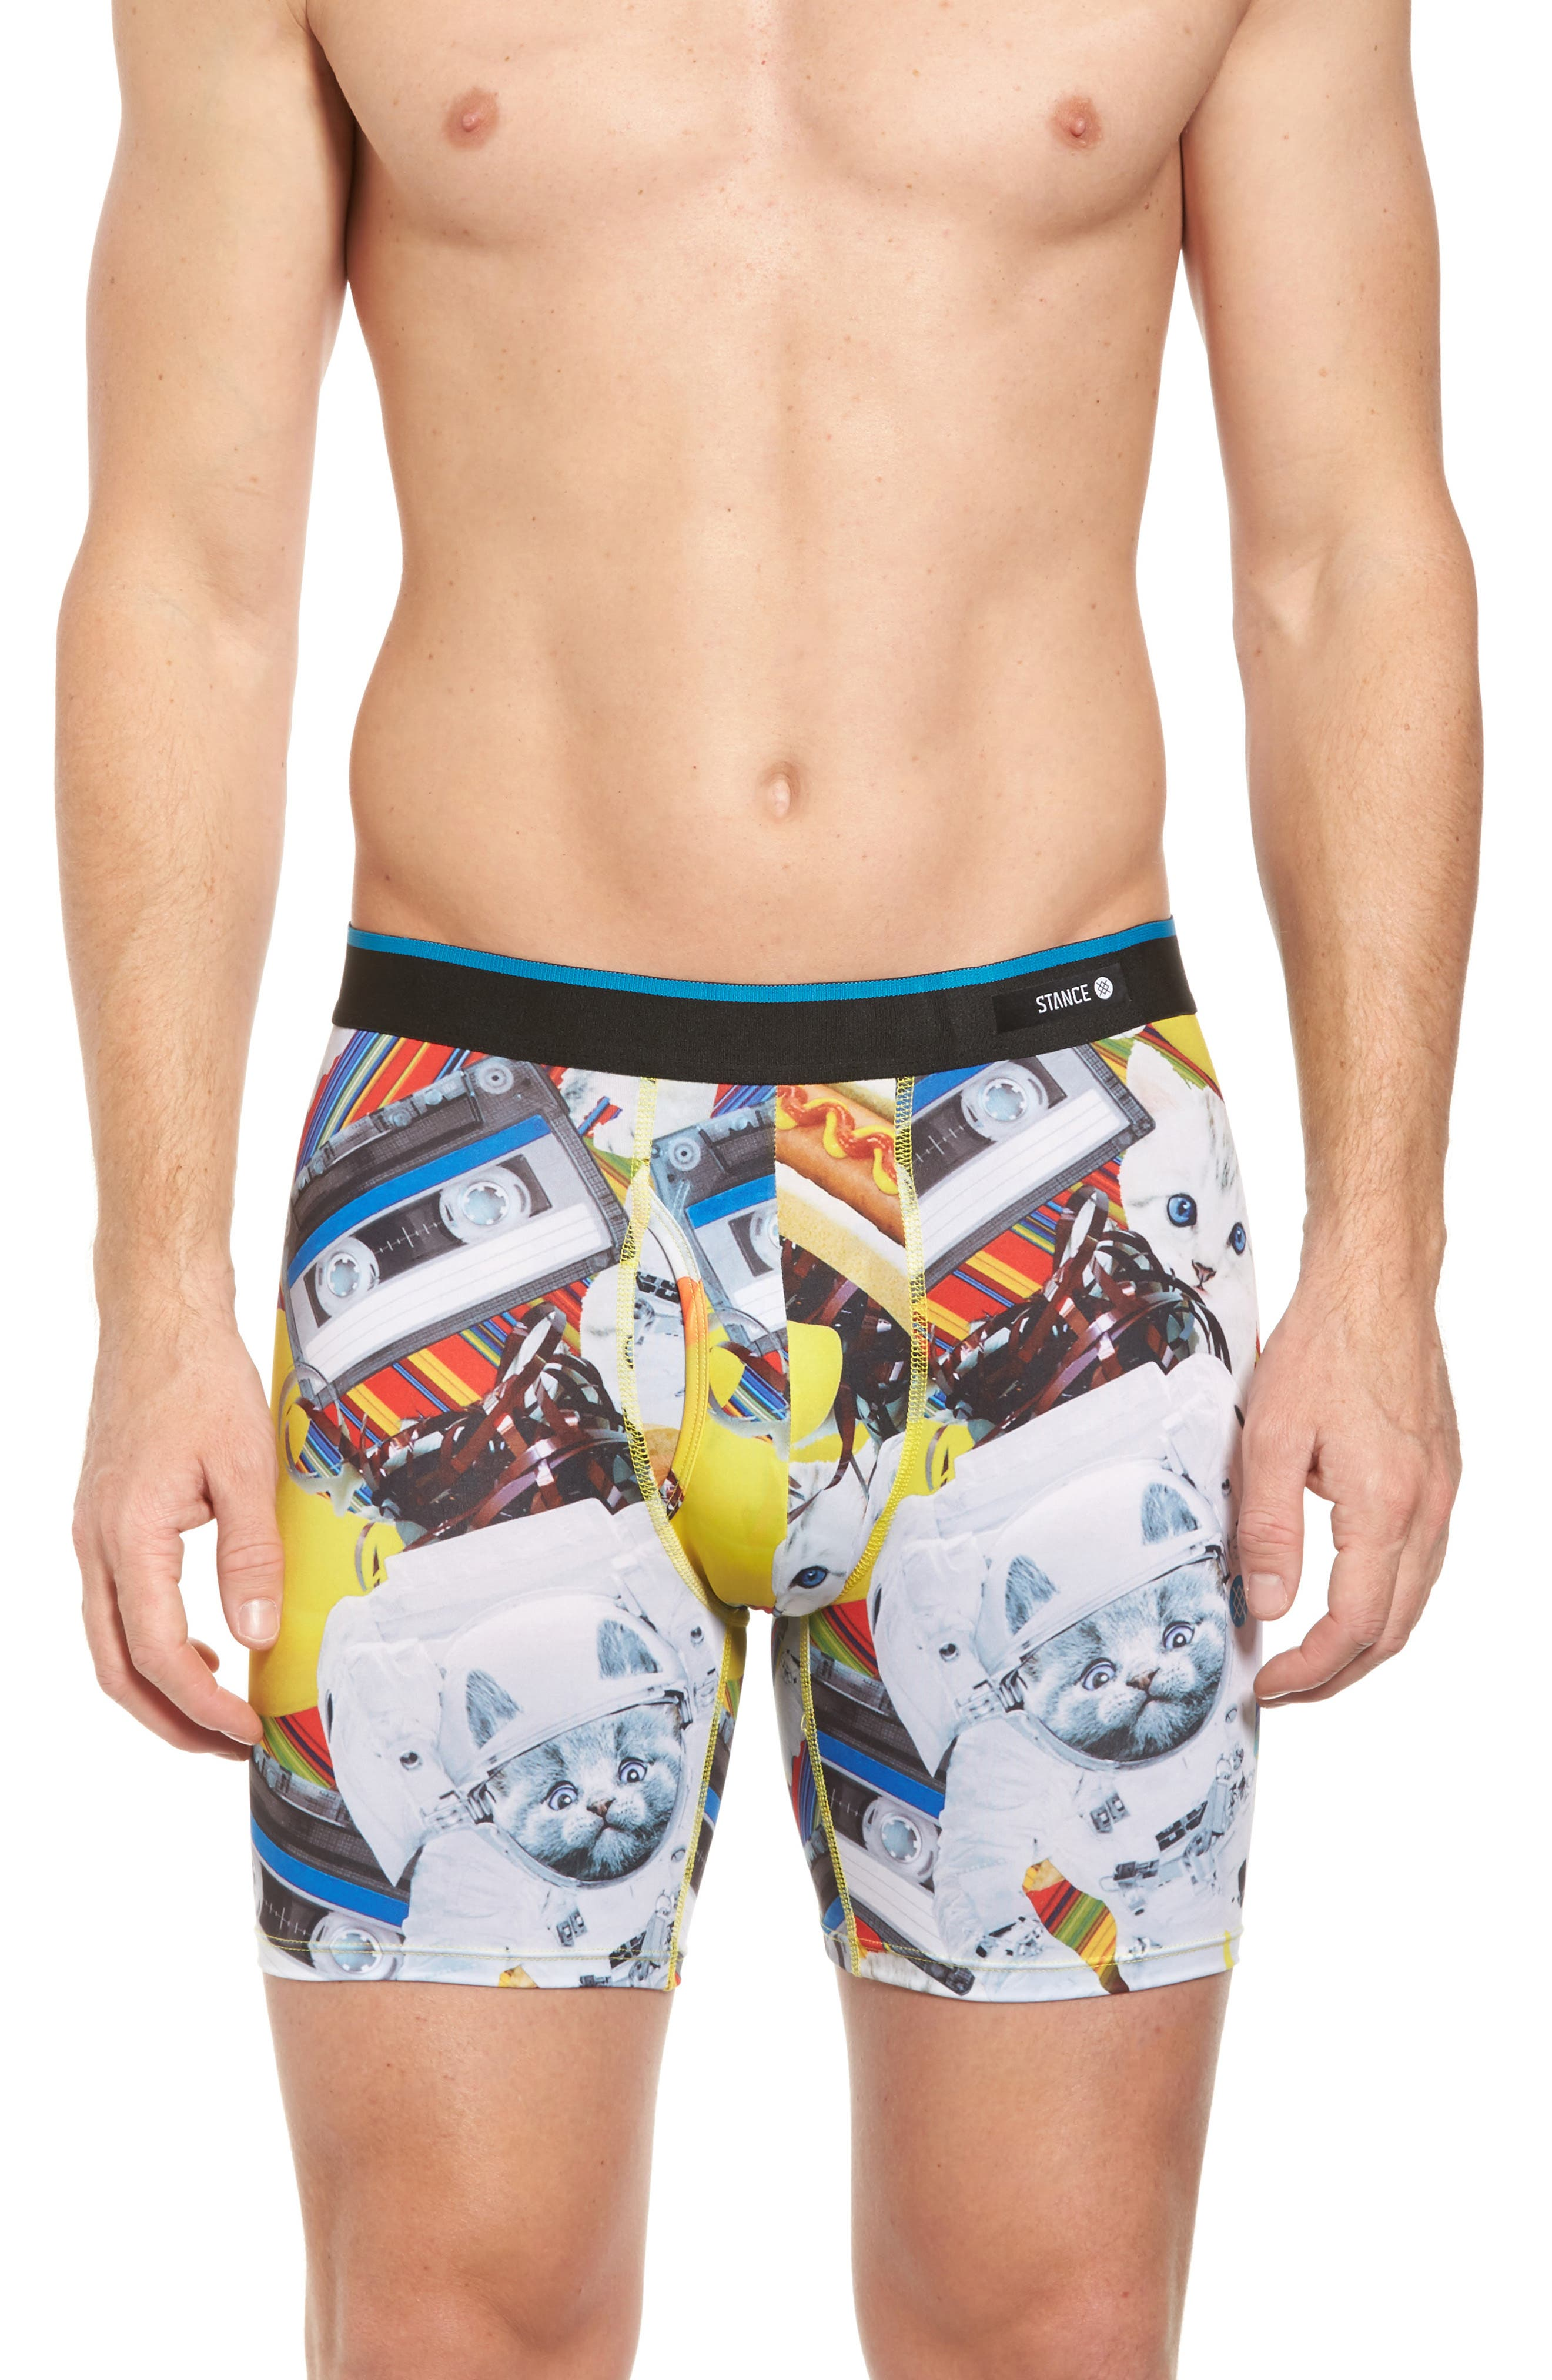 Castronaut Boxer Briefs,                             Main thumbnail 1, color,                             Yellow Multi